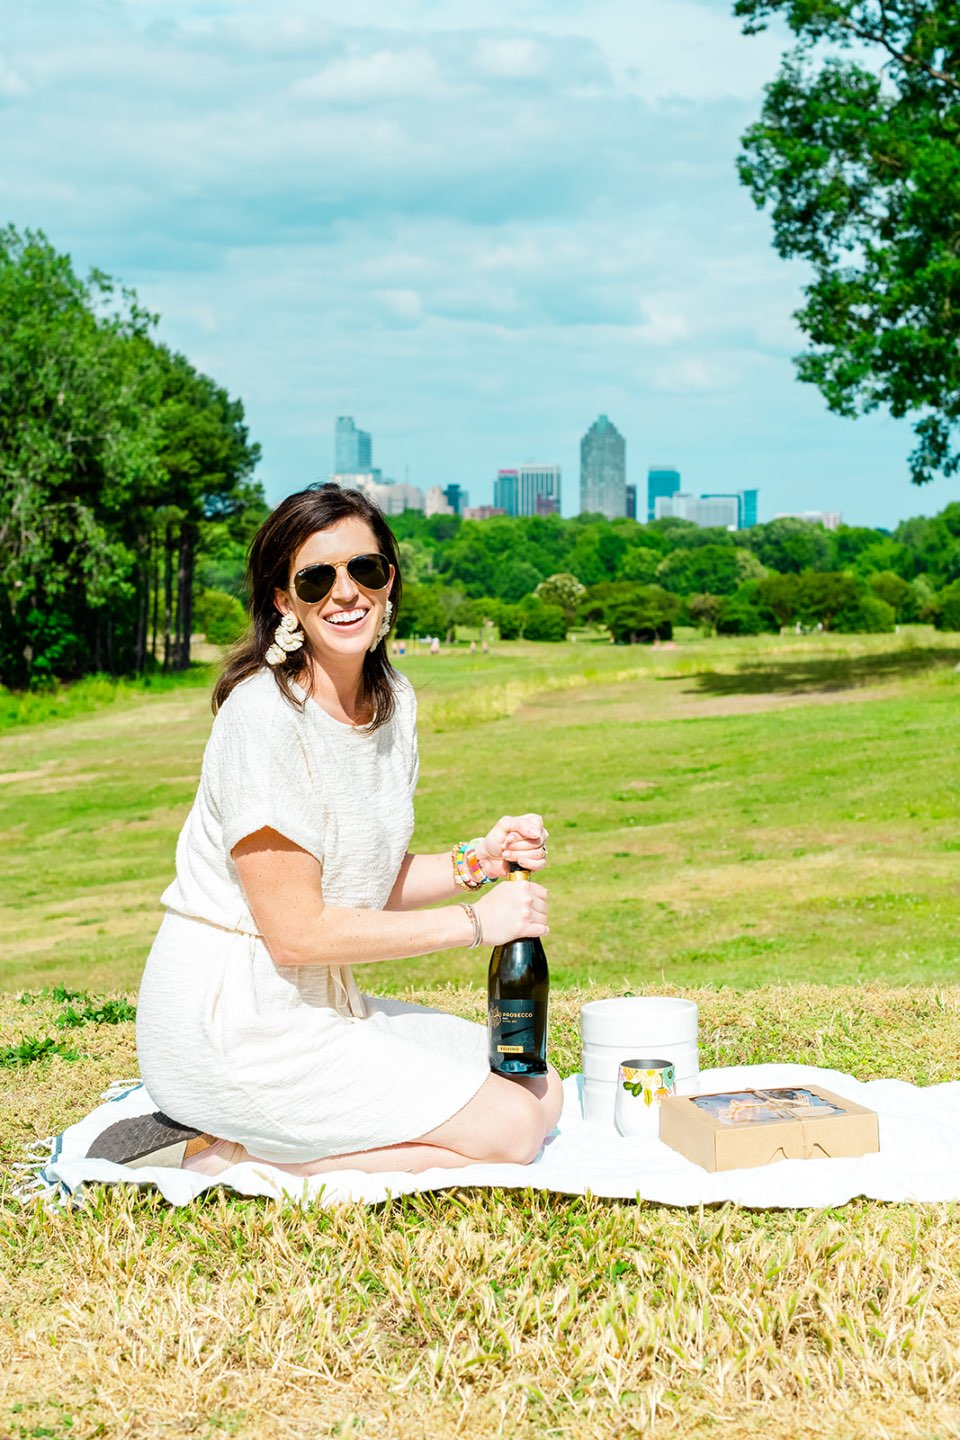 The Top 3 Places to Have a Picnic in Raleigh - I'm Fixin' To - @mbg0112   Picnic in Raleigh by popular North Carolina blog, I'm Fixin' To: image of a woman sitting on a blanket at Dorothea Dix park and holding a bottle of wine.